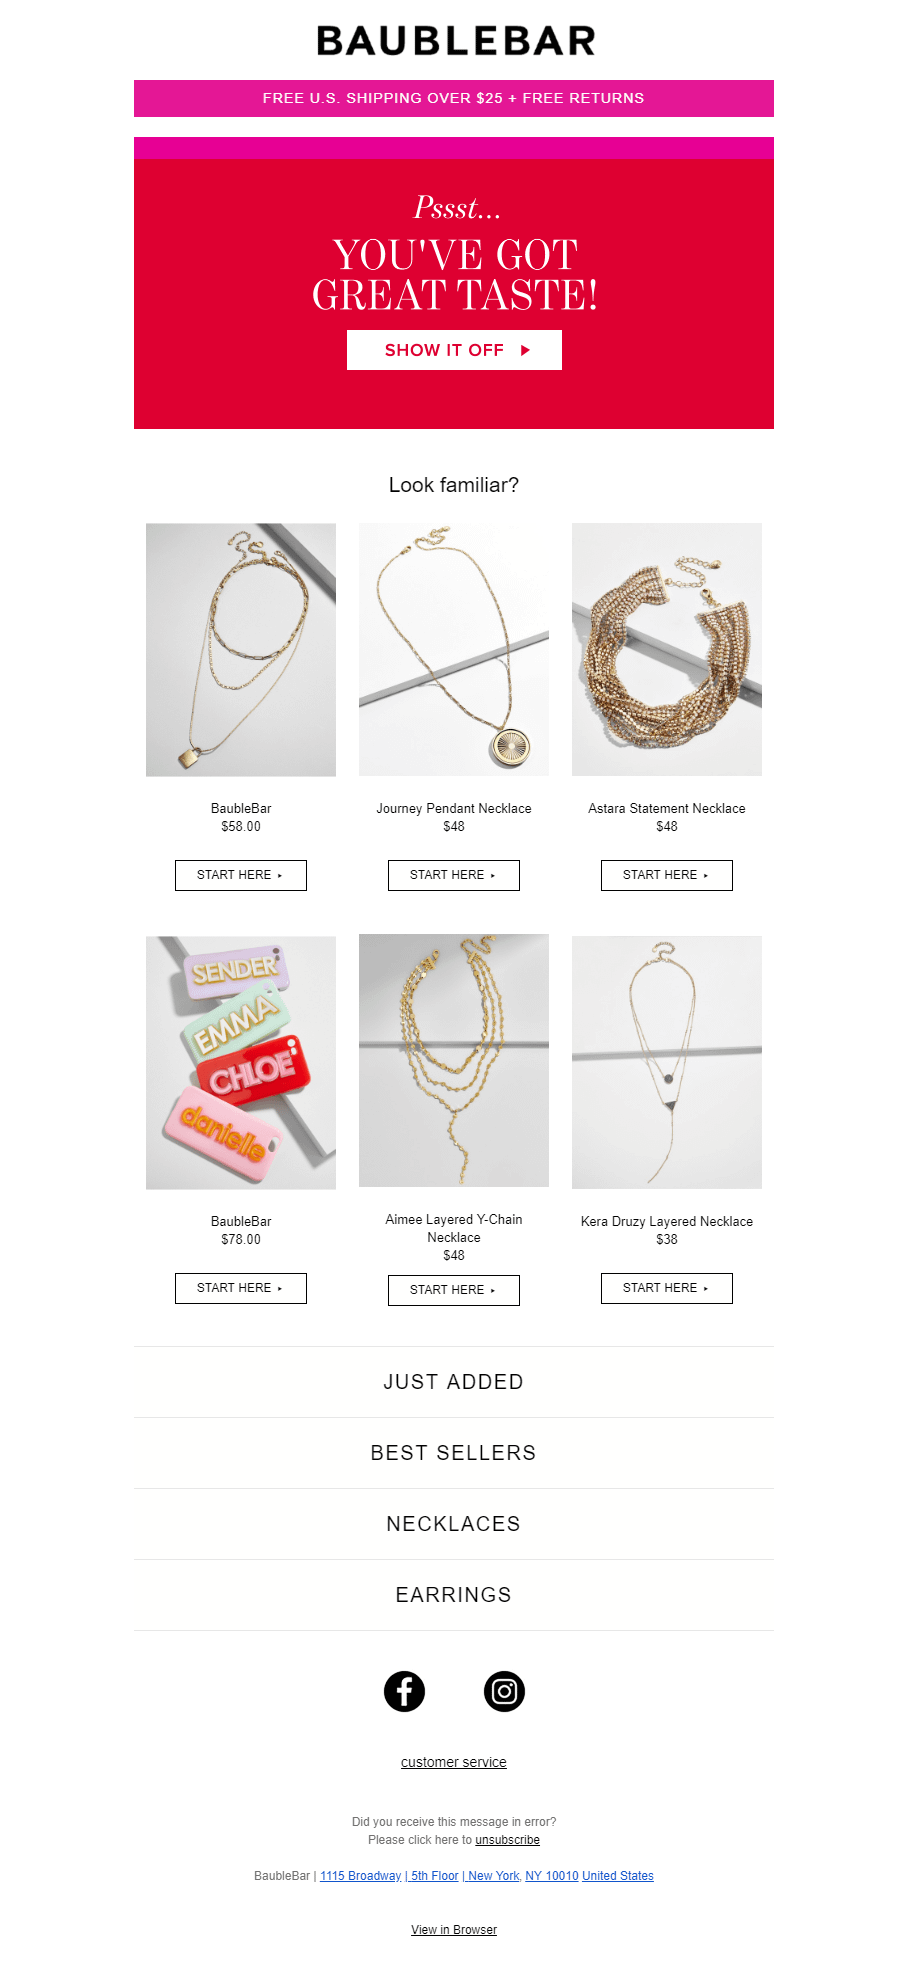 BaubleBar's abandoned cart email